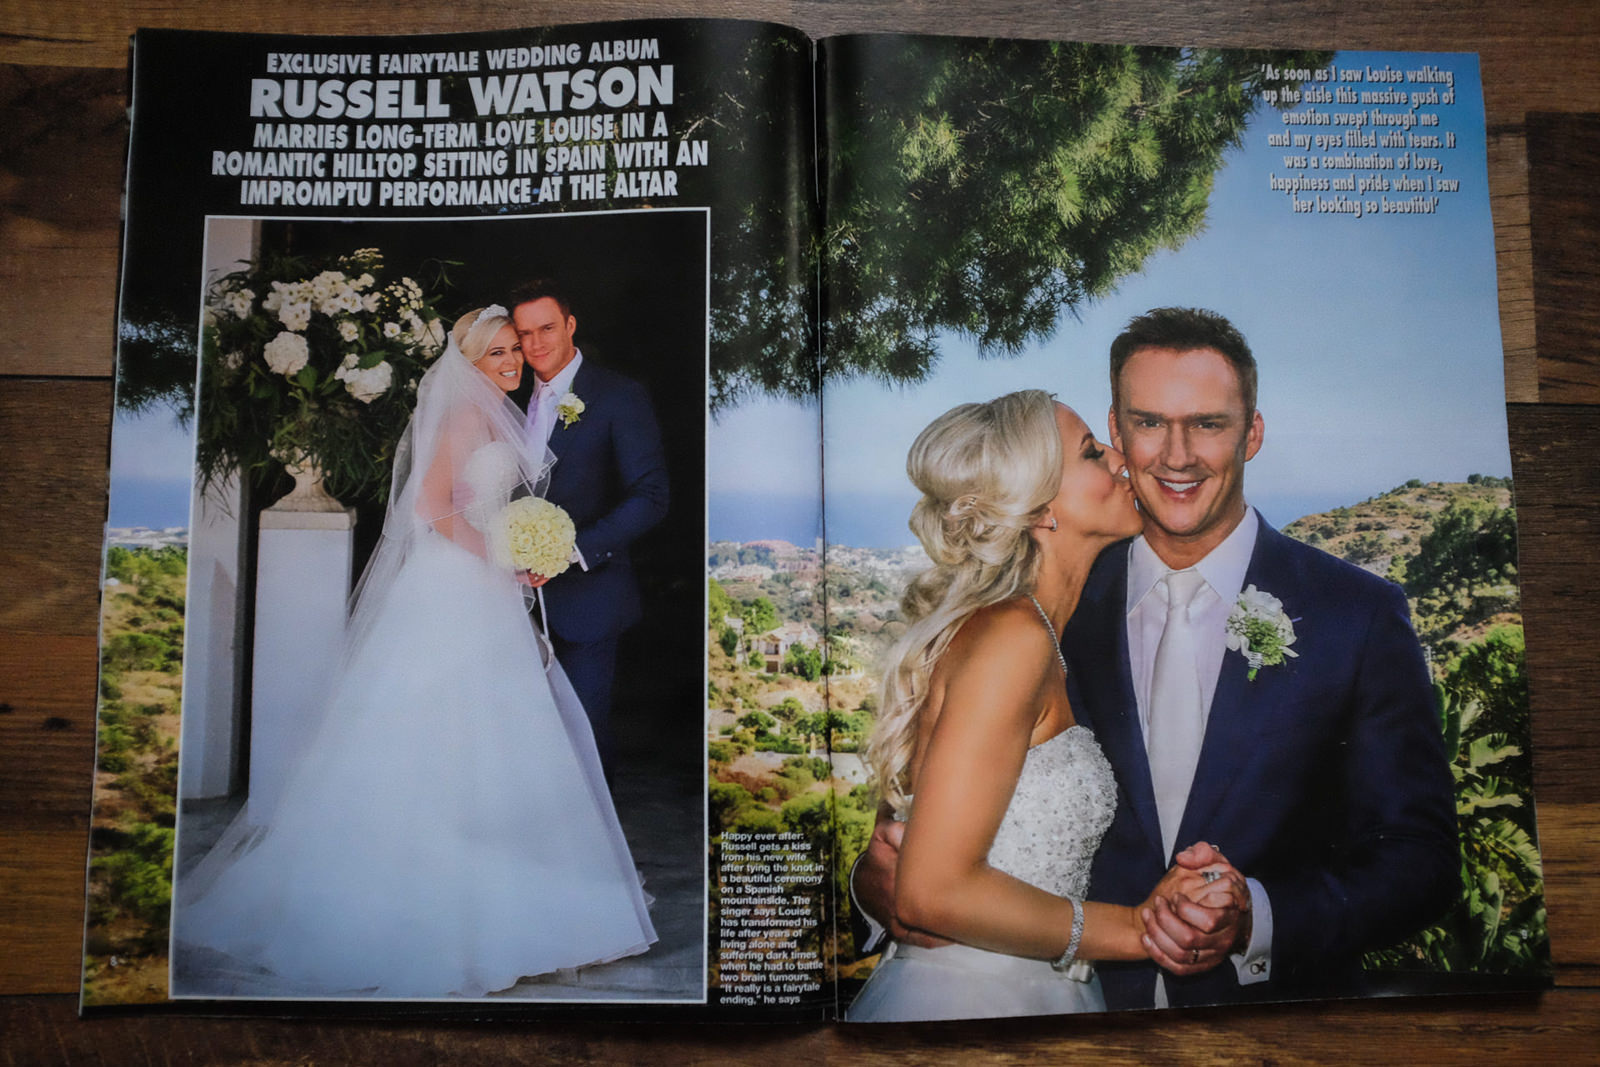 Liverpool Celebrity wedding photographer | Hello magazine, Russell Watson wedding